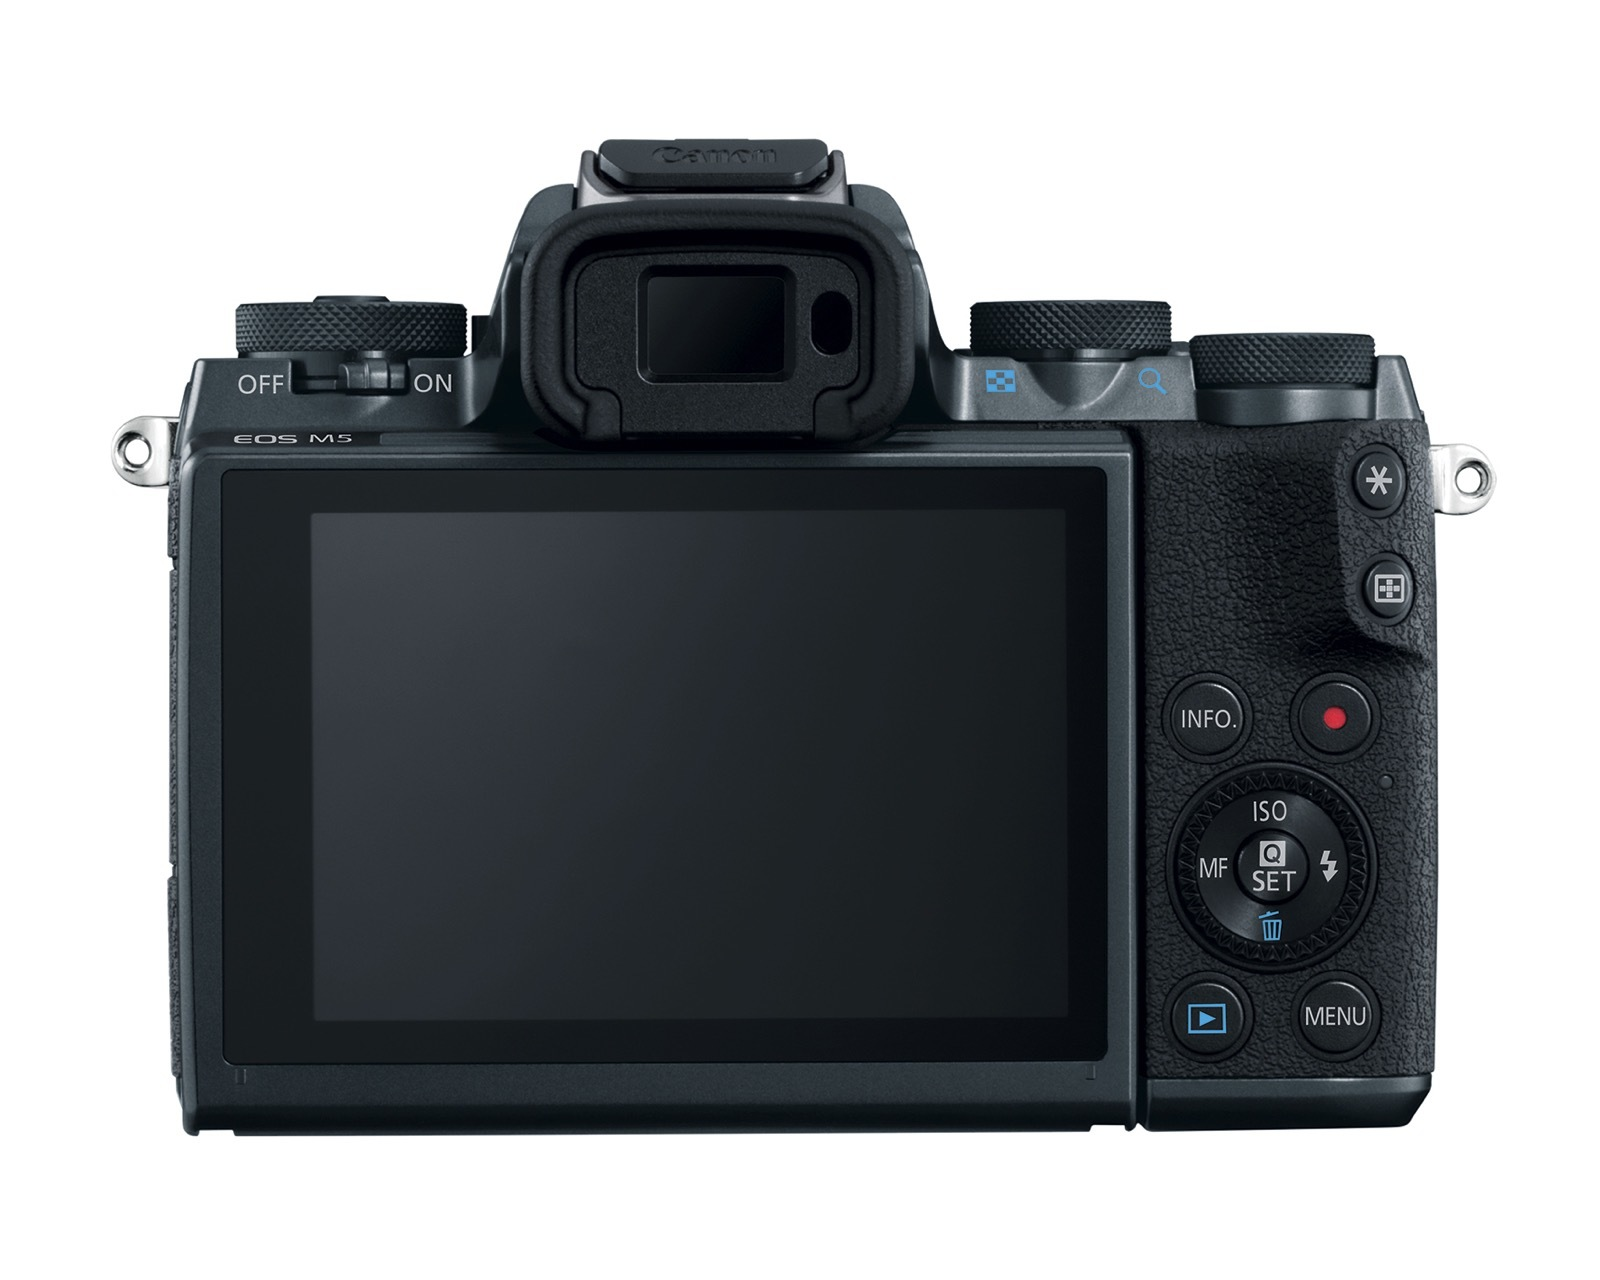 canon-eos-m5-back-cl-1